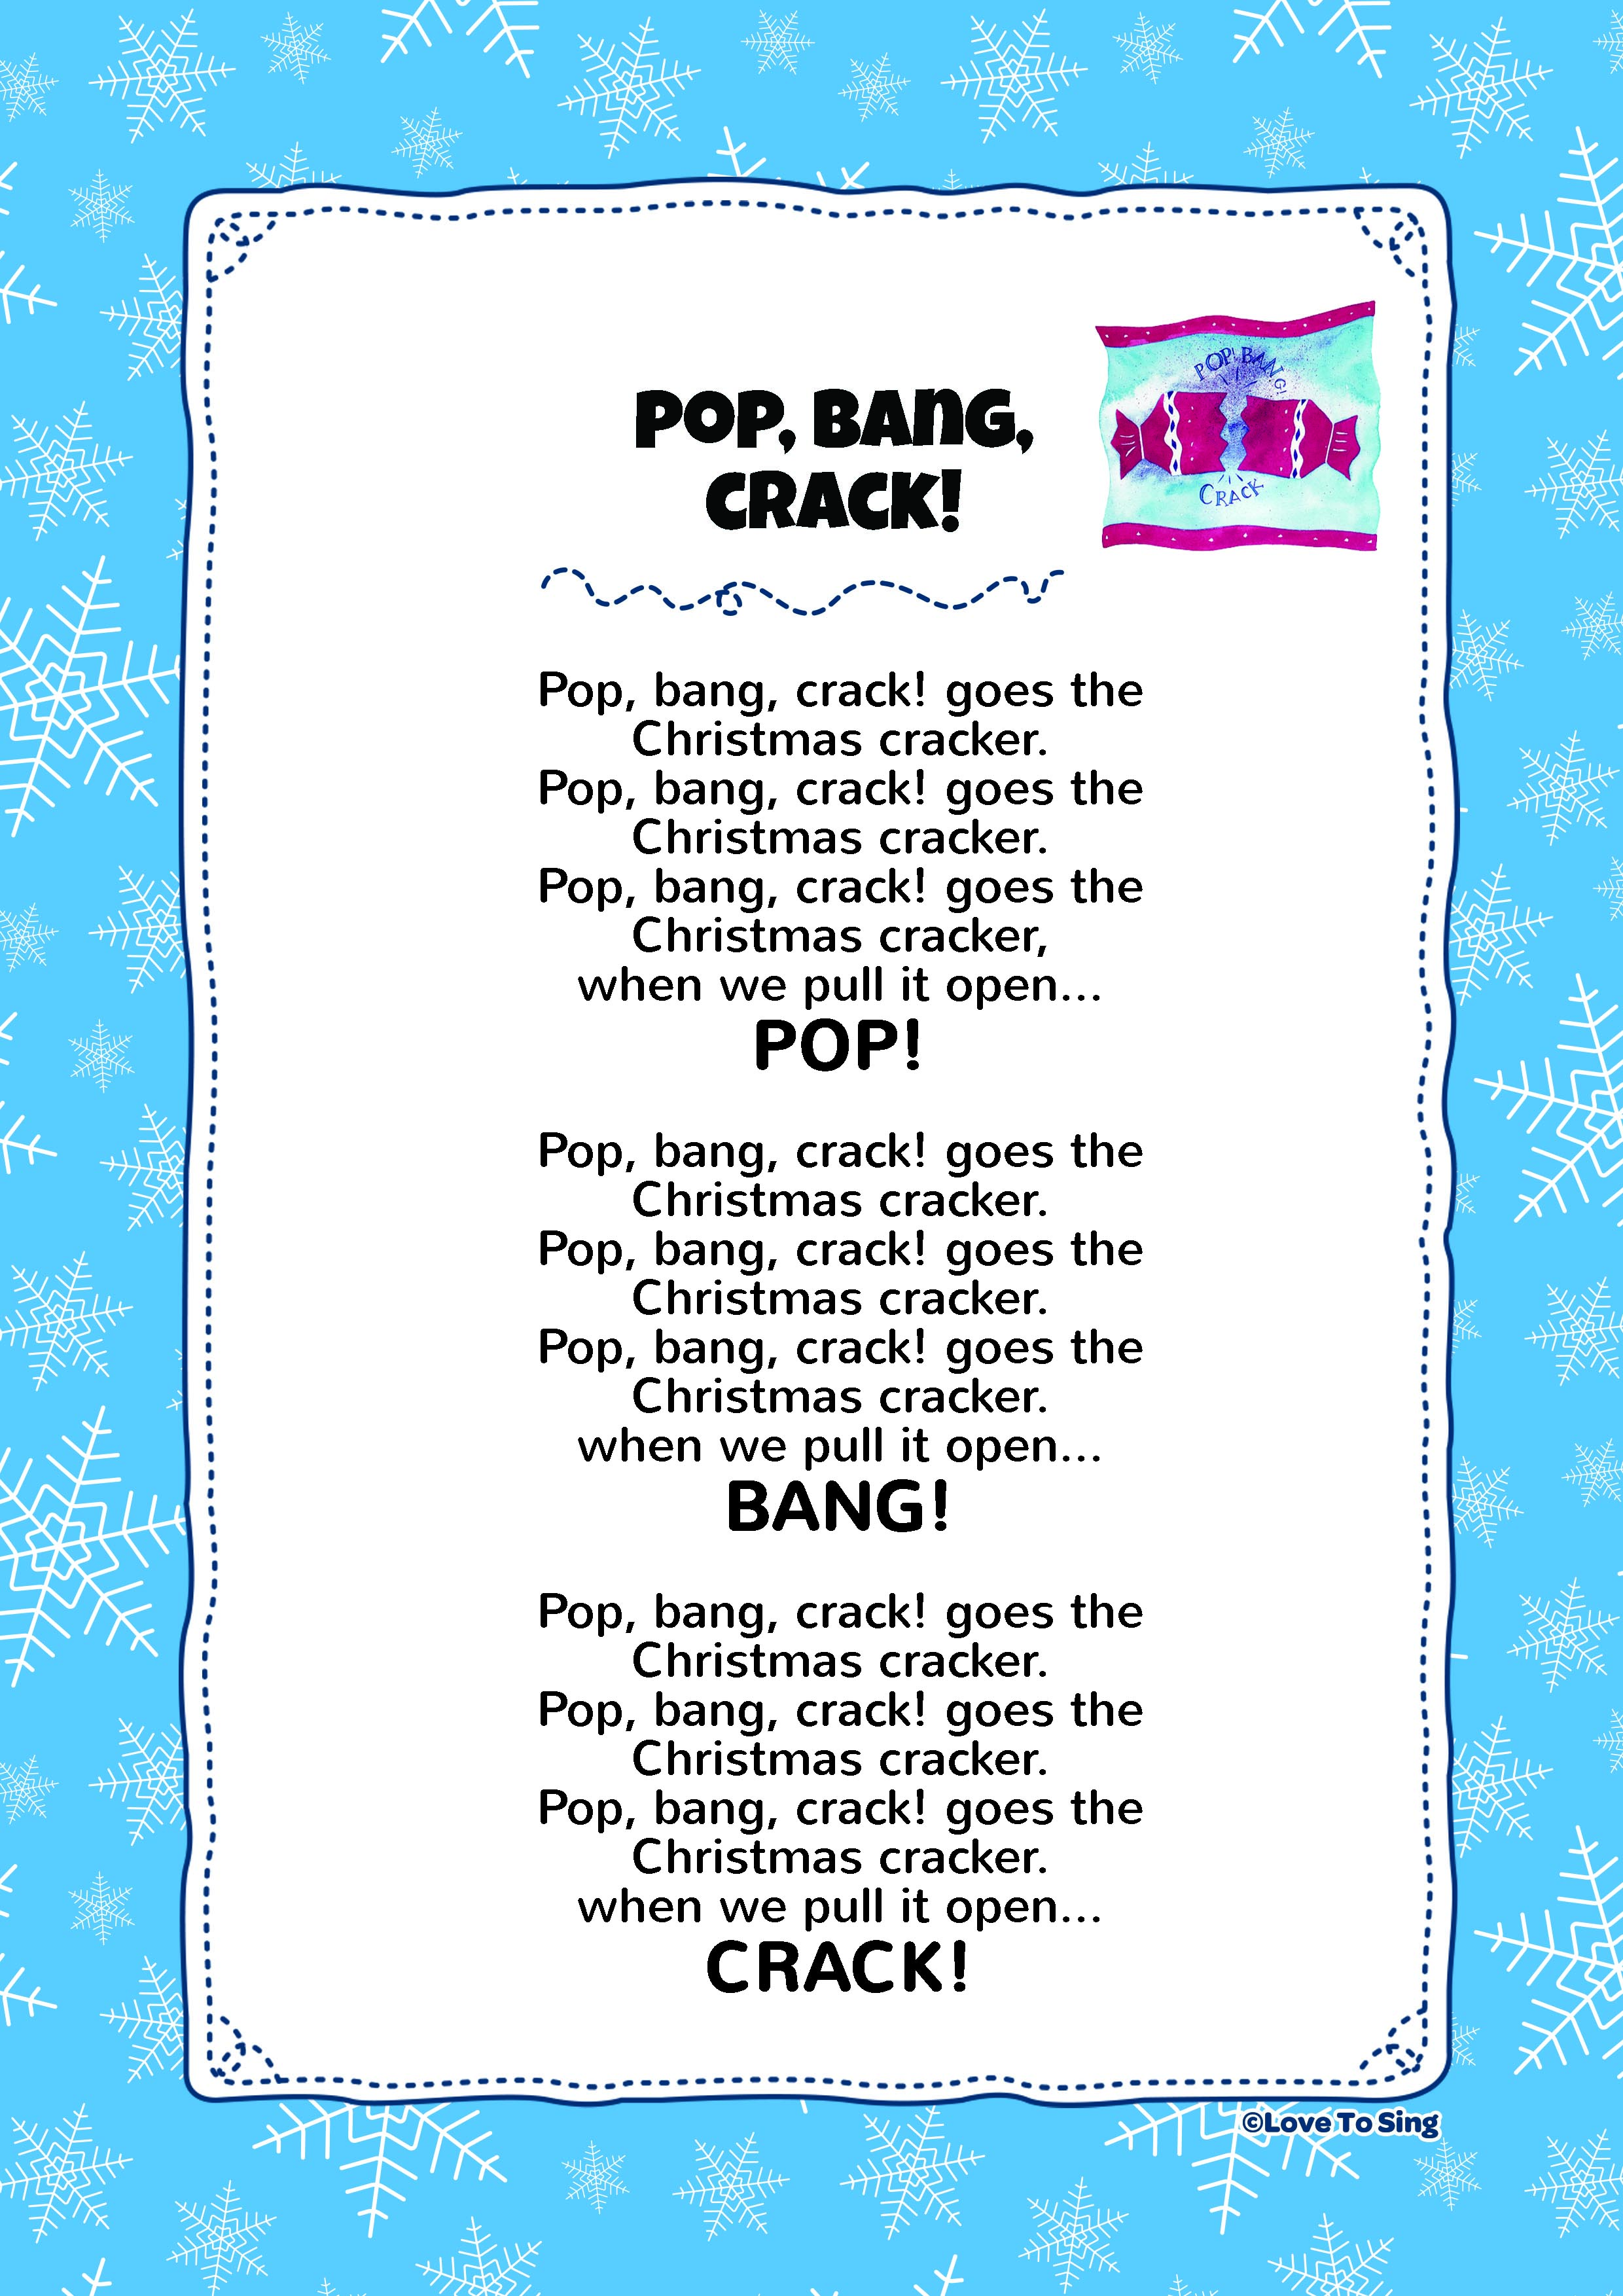 Pop Bang Crack | Kids Video Song with FREE Lyrics & Activities!